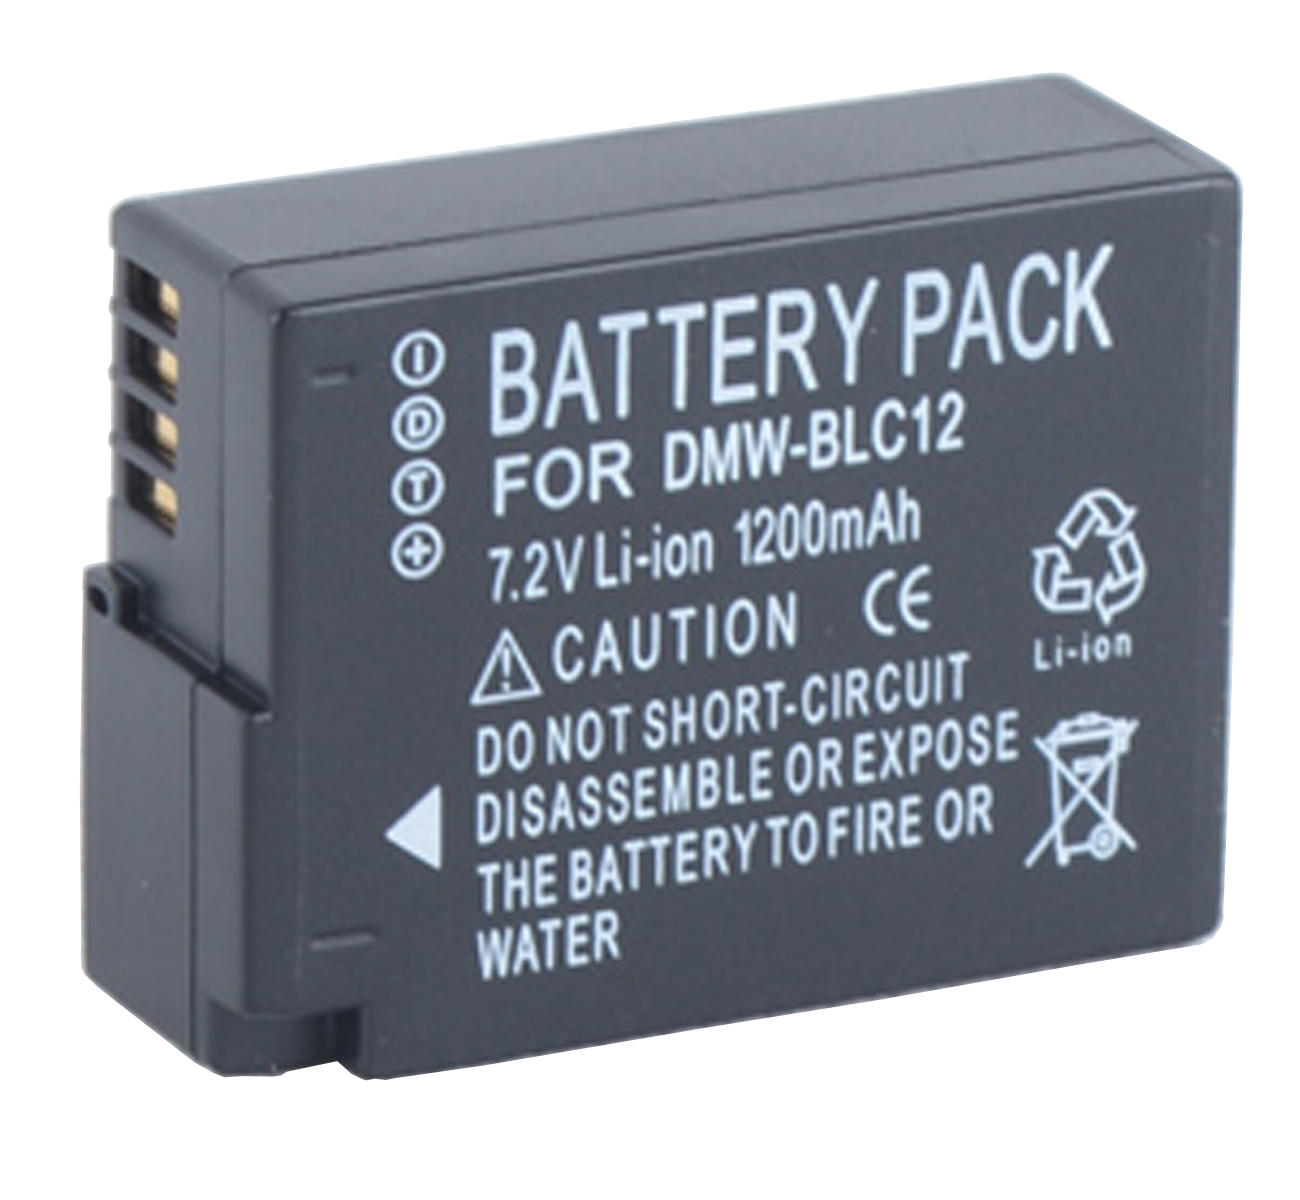 Battery Pack for Panasonic Lumix DMC-FZ200, DMC-FZ300, DMC-FZ330, DMC-FZ1000, DC-FZ10002, DMC-FZ2000, DMC-FZ2500 Digital Camera image